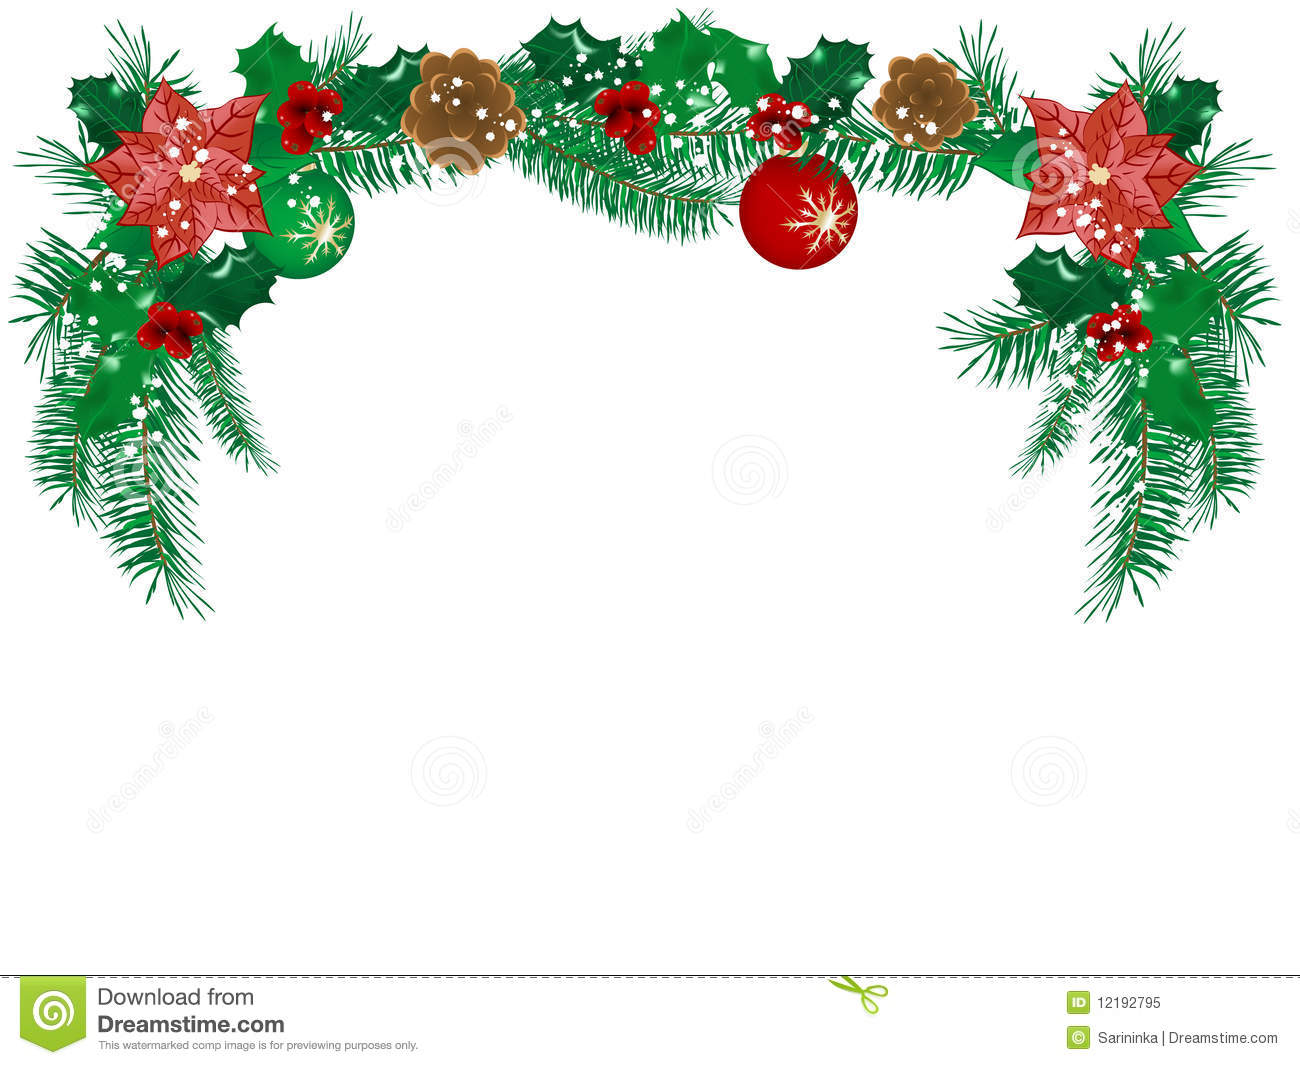 Christmas flowers free clipart image library download Free clipart christmas flowers - ClipartFest image library download